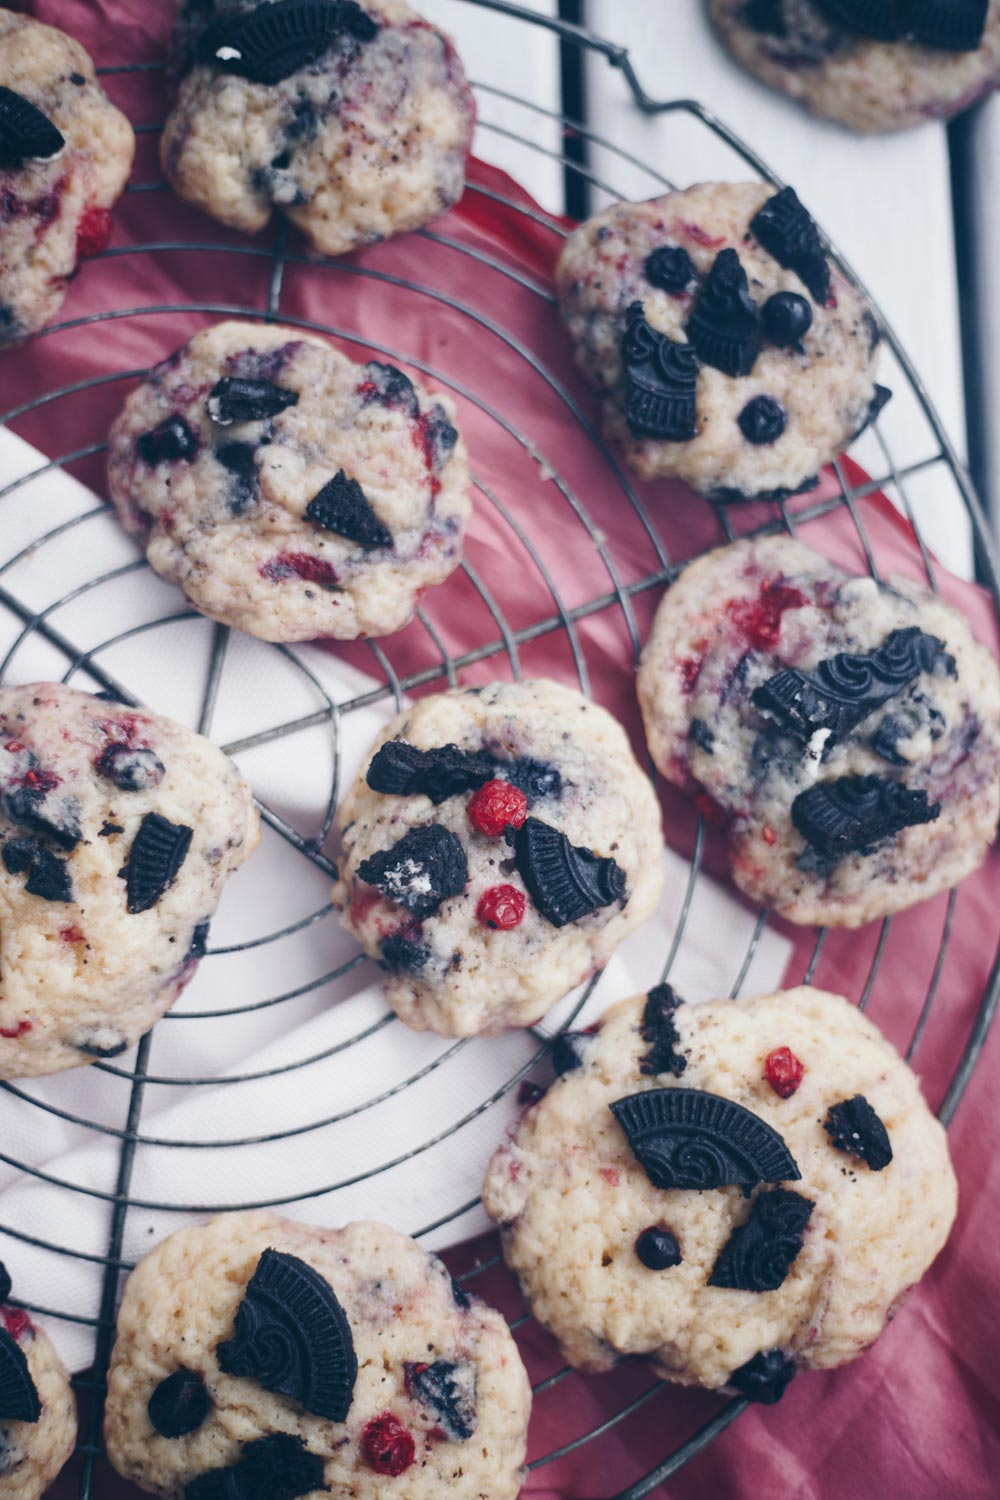 Berries & Cream Cookies backen